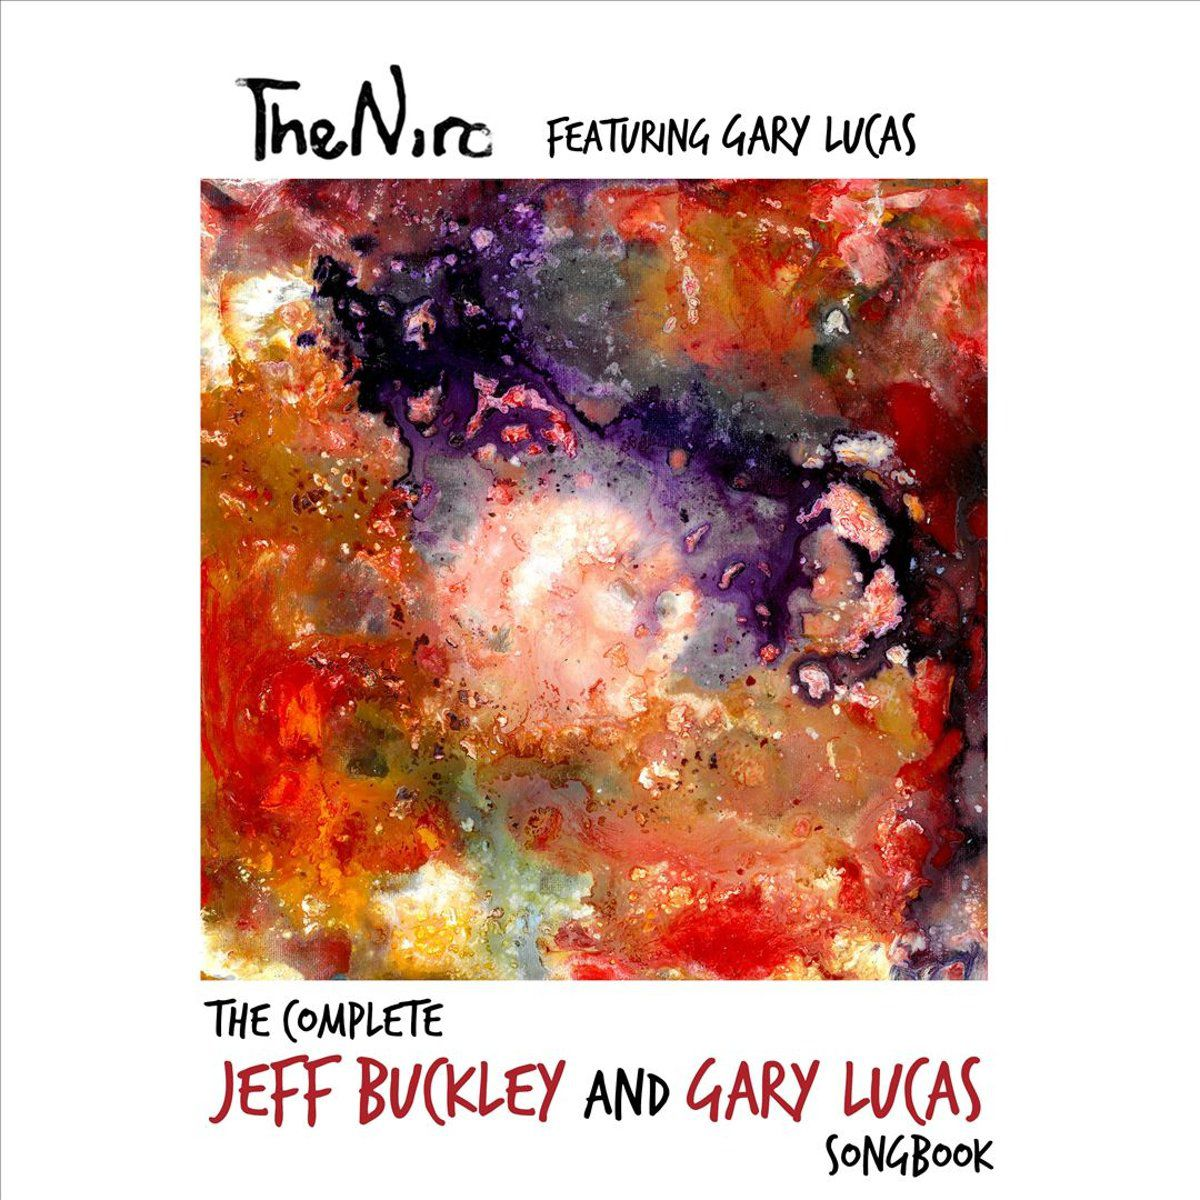 The Complete Jeff Buckley And& Gary Lucas Songbook